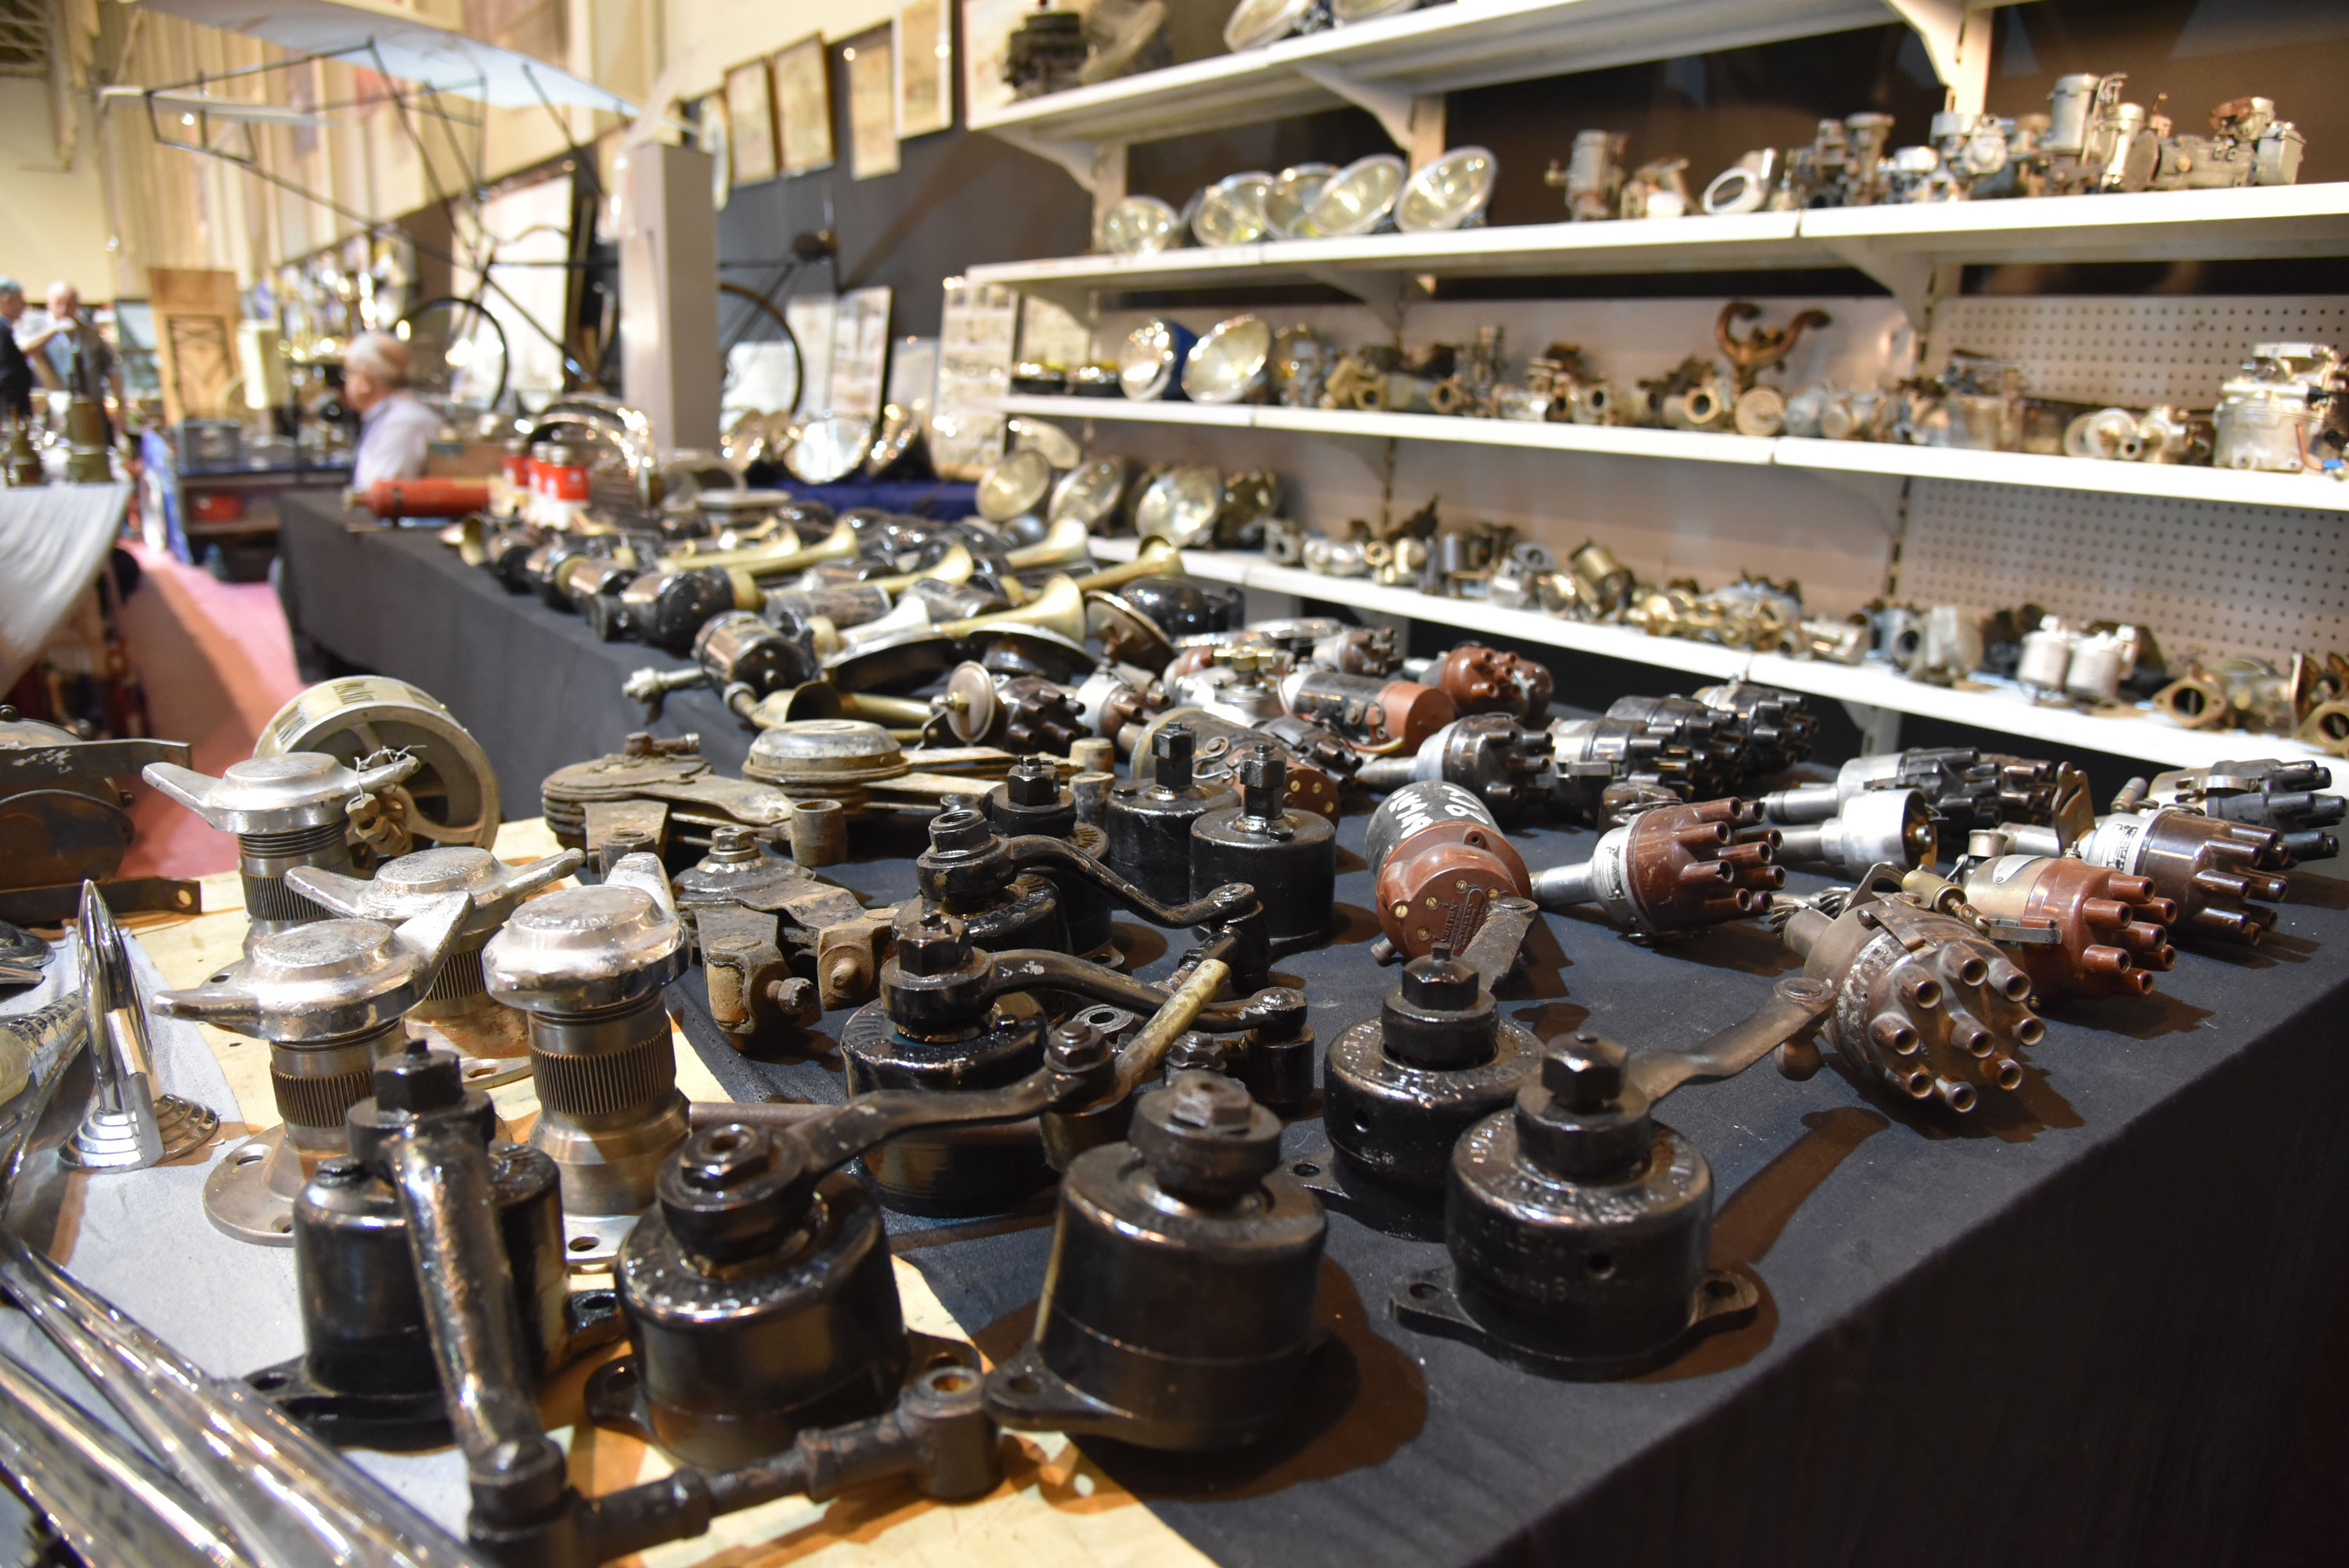 Many of the 2500 vendors at Techno Classica Essen are specialists, and it's not uncommon to see one whole booth of just headlights, next to another booth of just taillights, next to one of just Weber carburetors. This booth specialized in old friction-type and knee-action shock absorbers.